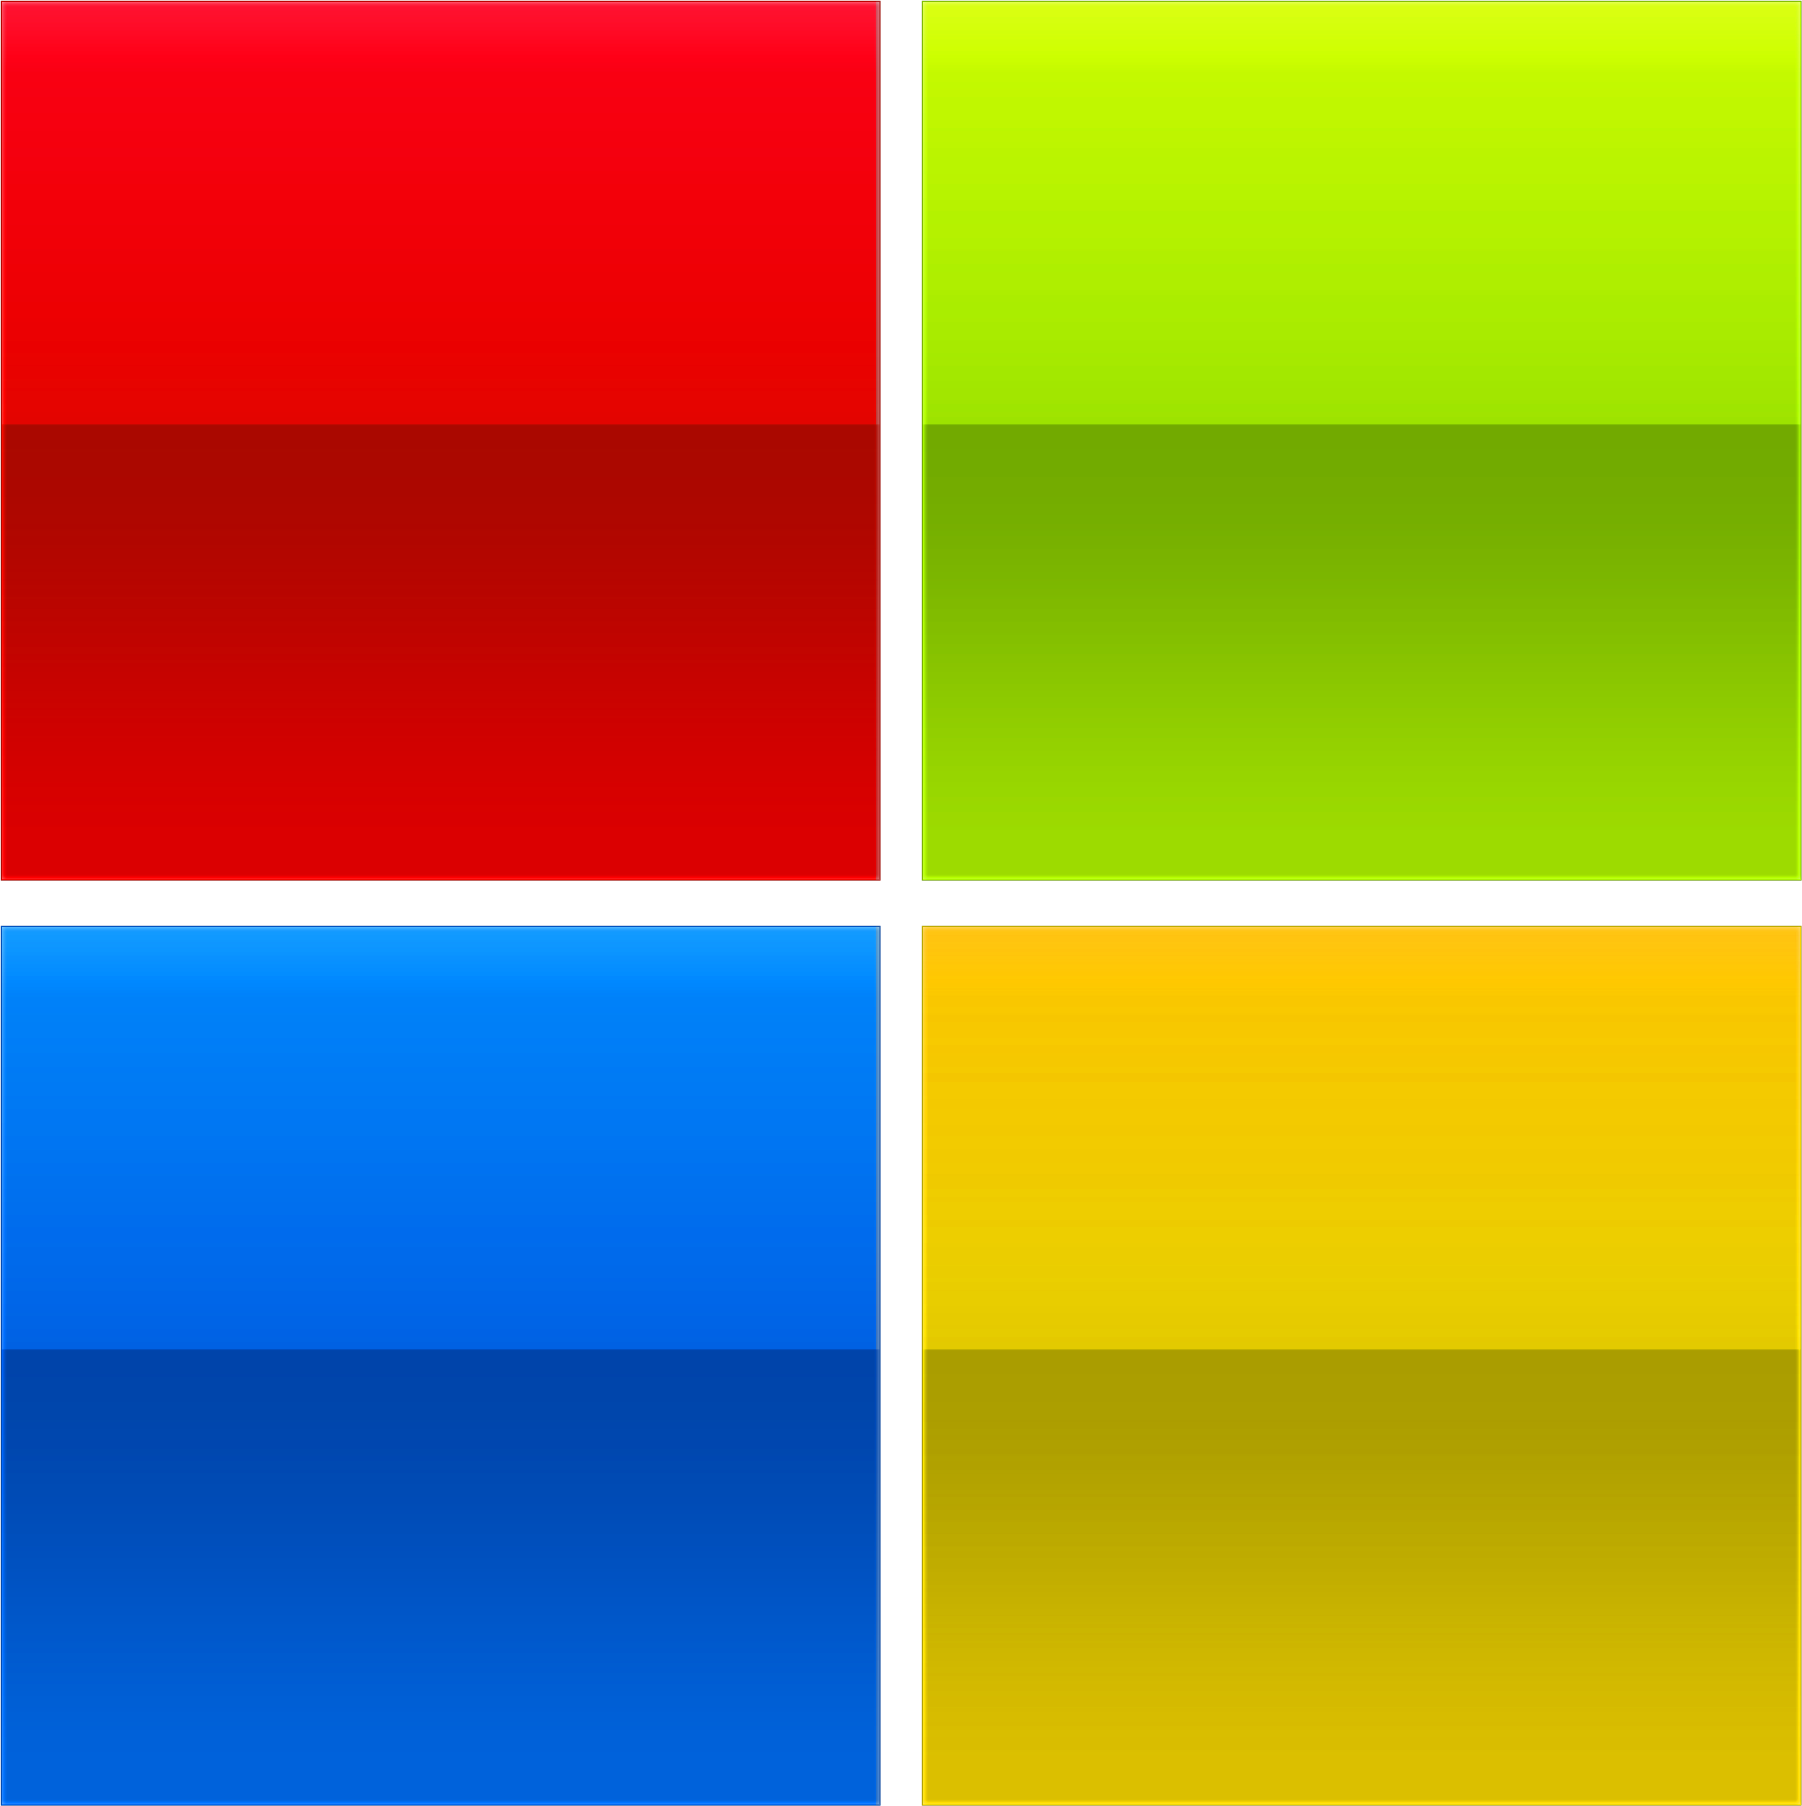 19 windows 1 0 icon png line images microsoft windows for Microsoft windows 1